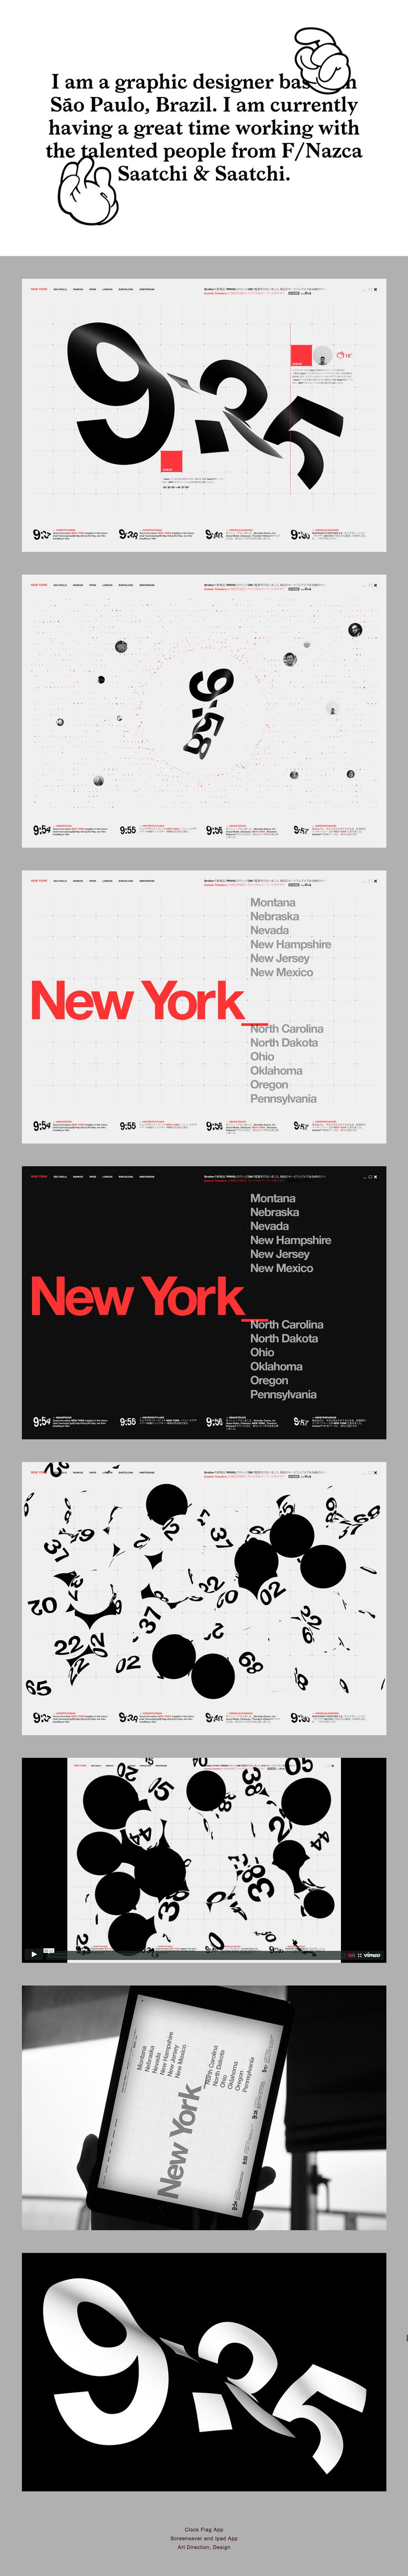 Poster design site - Web Layout Layout Design Design Web Graphic Design Deck Design Swiss Style Presentation Design Amazing Websites Interactive Design